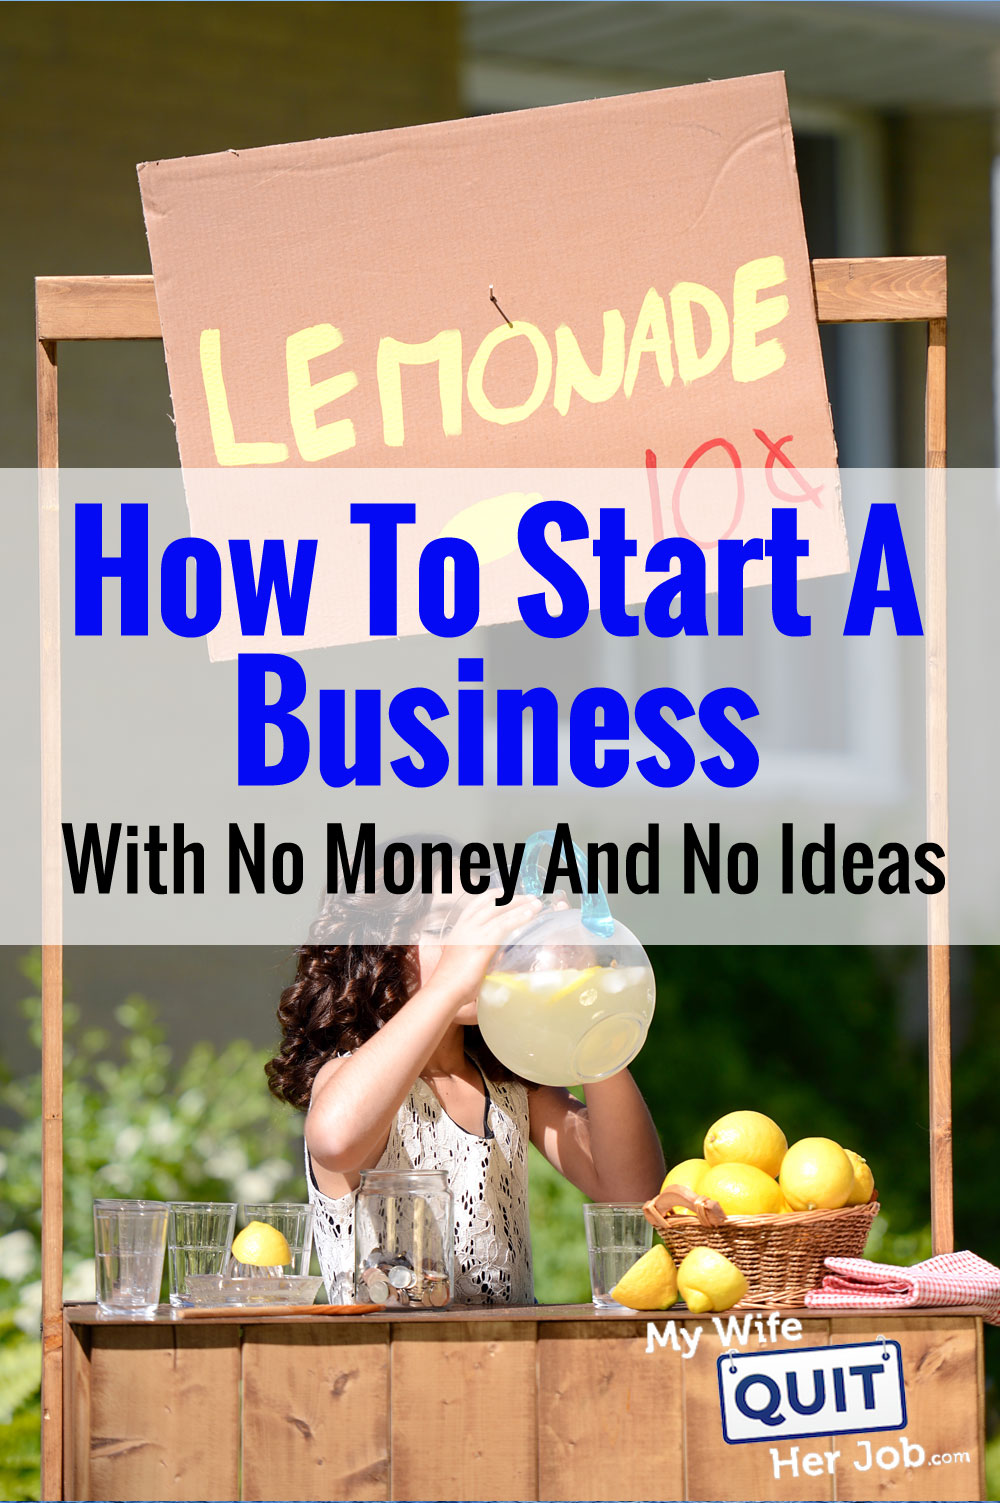 How To Start A Business With No Money And No Ideas.  Here's Exactly What I'd Do